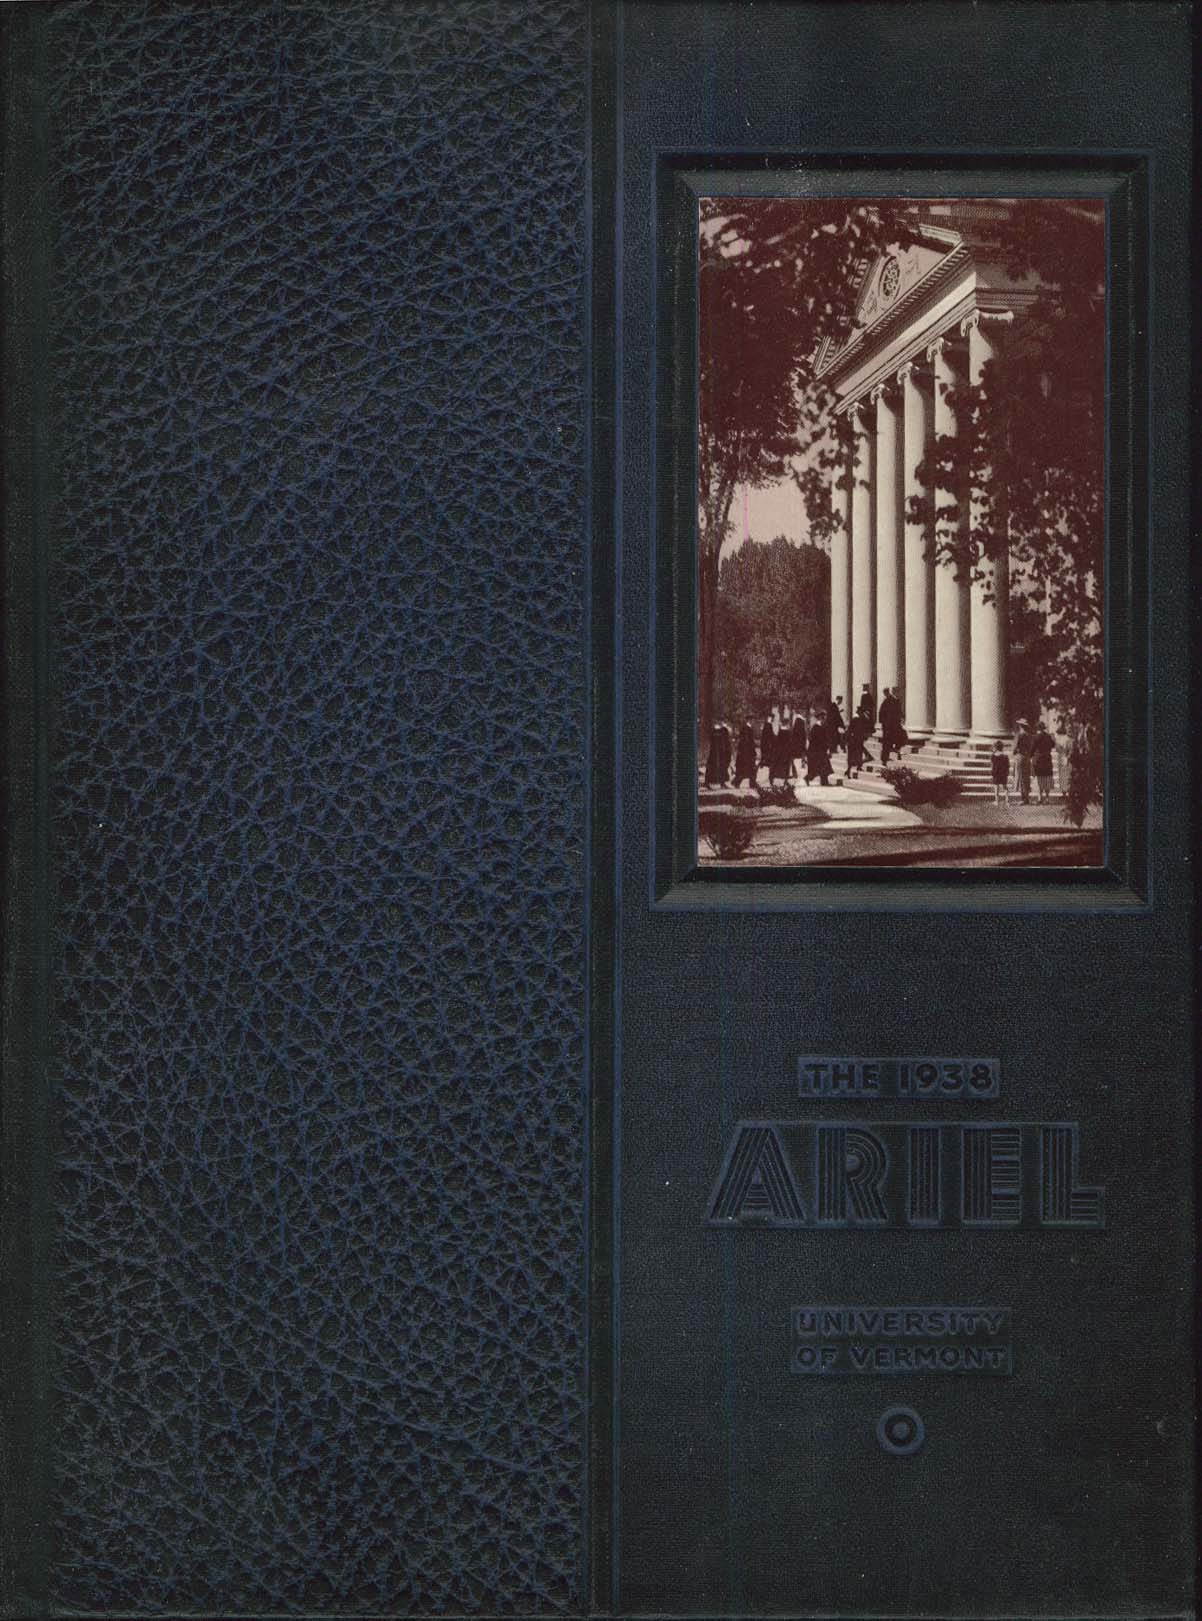 1938 Ariel University of Vermont Burlington VT Yearbook